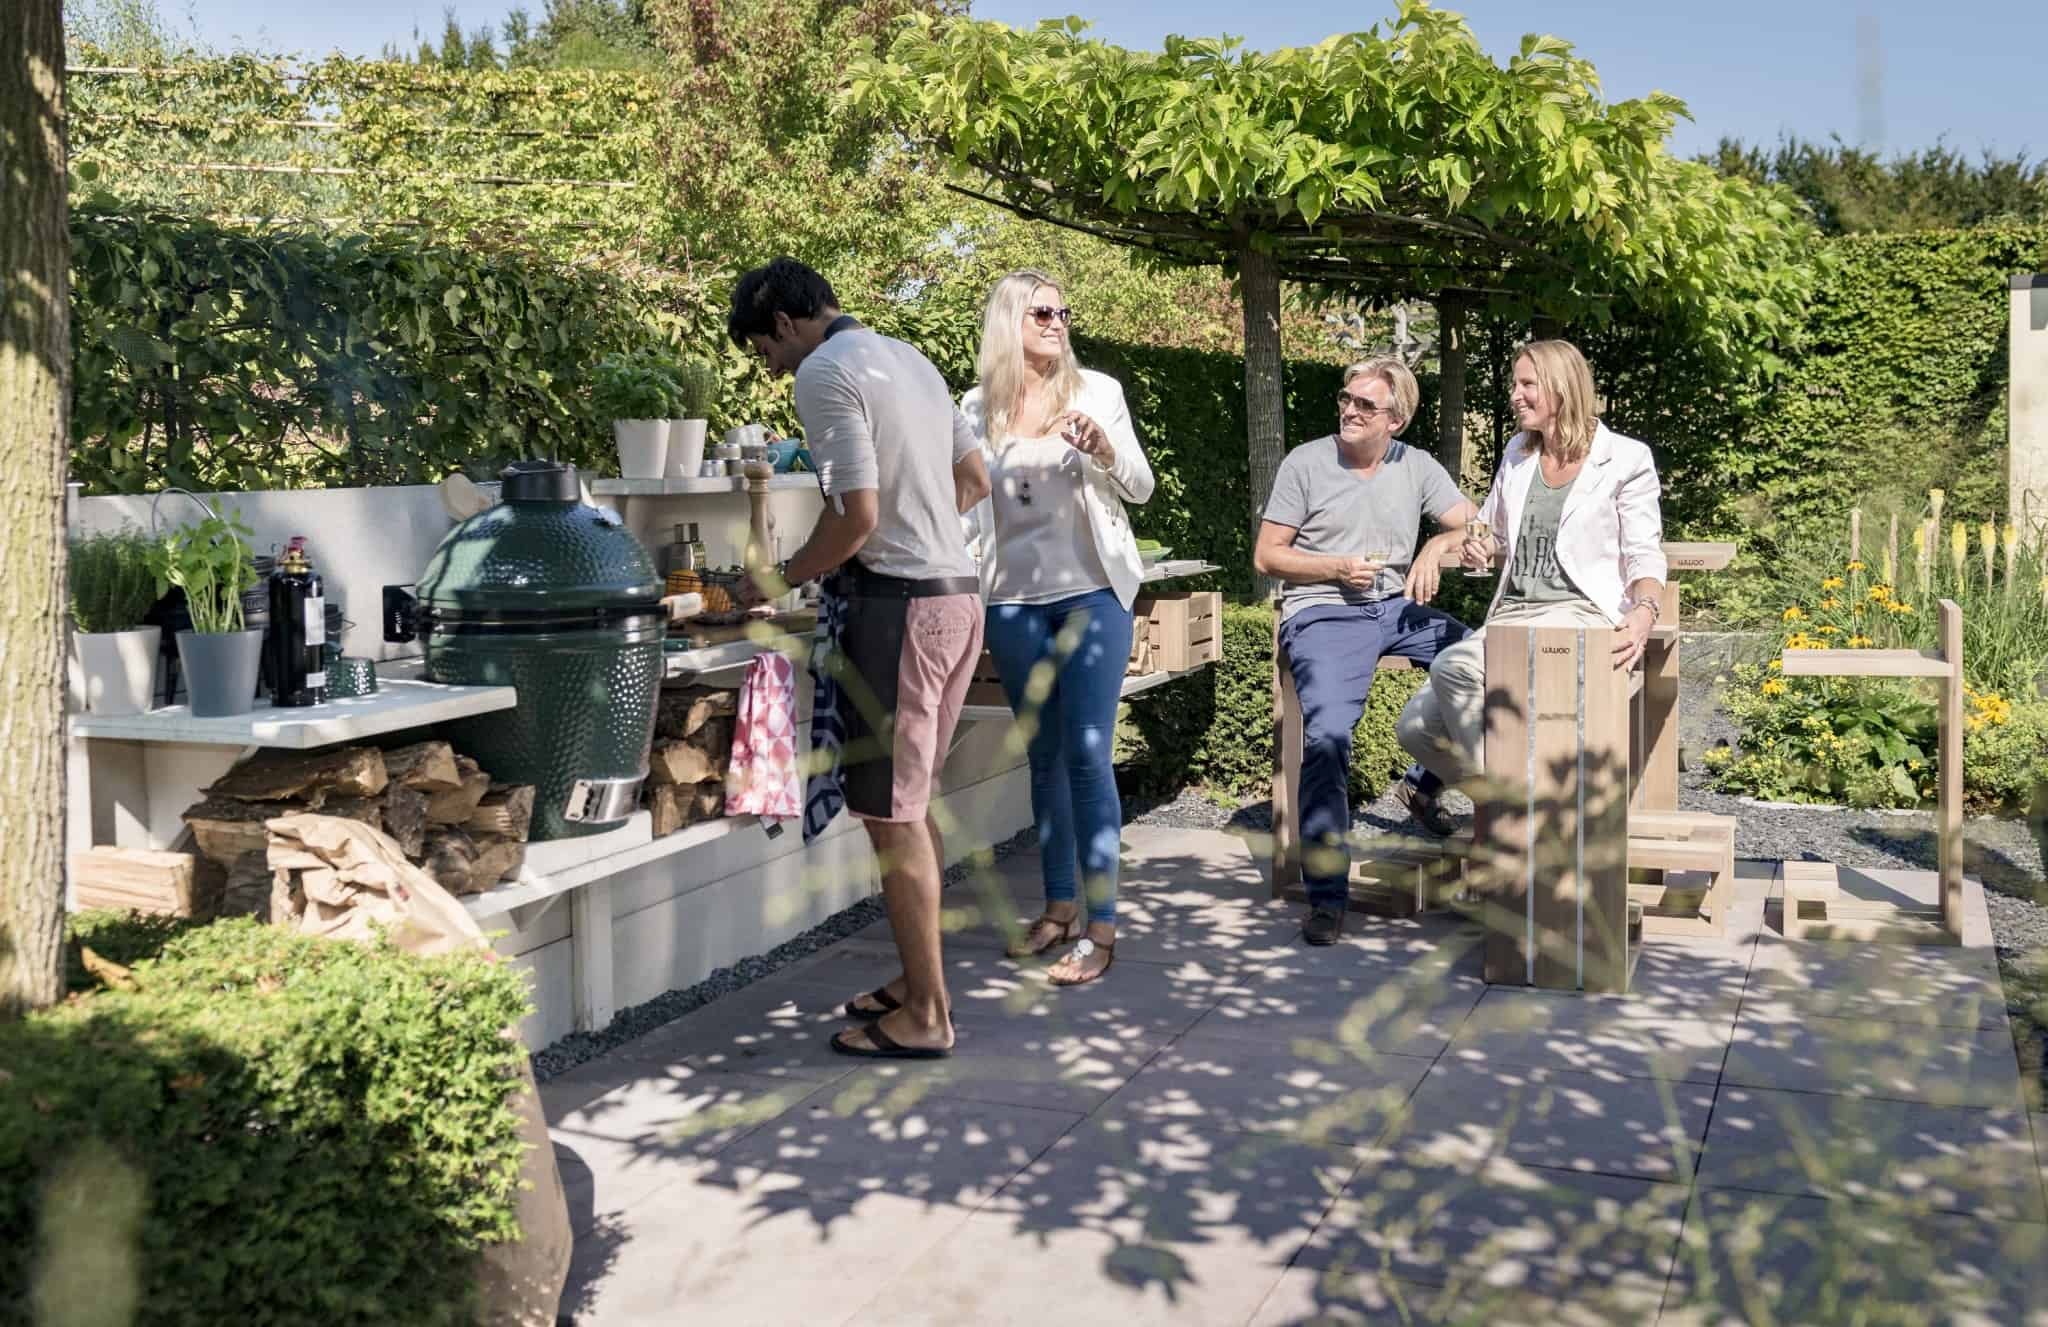 WWOO outdoor kitchen is a low maintenance concrete kitchen that can be customised to meet your needs